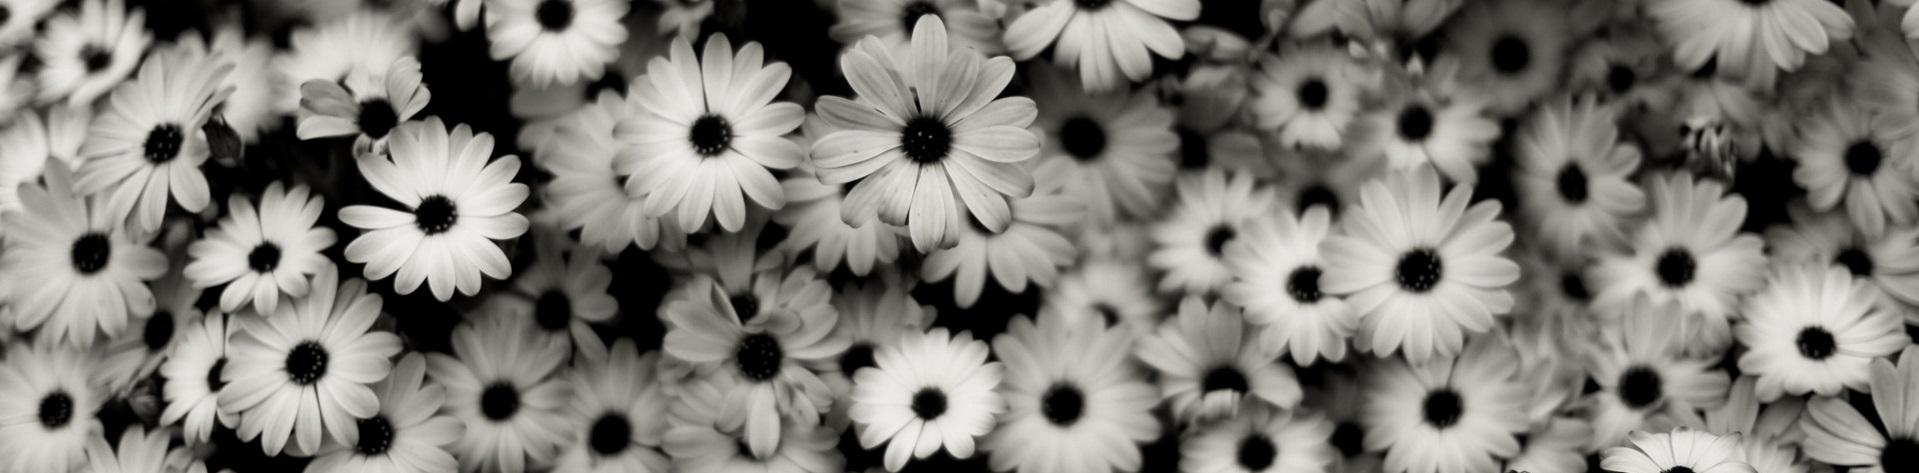 Black And White Flower Wallpaper Tumblr Images Pictures Becuo